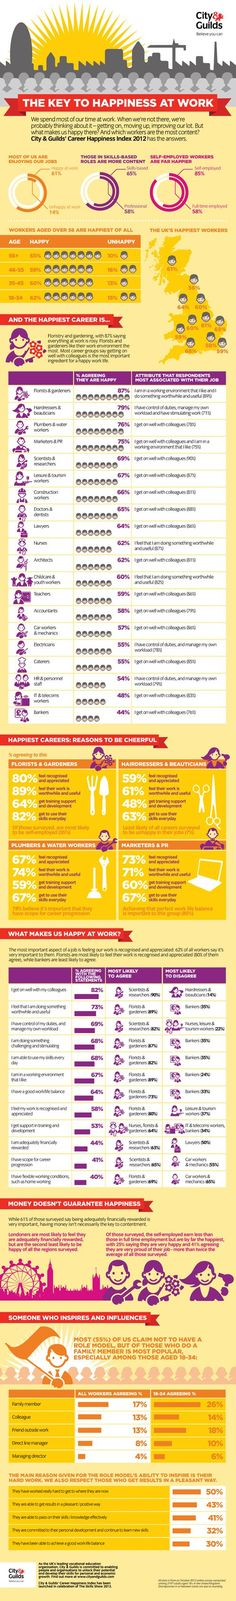 The Key To Happiness At Work[INFOGRAPHIC]